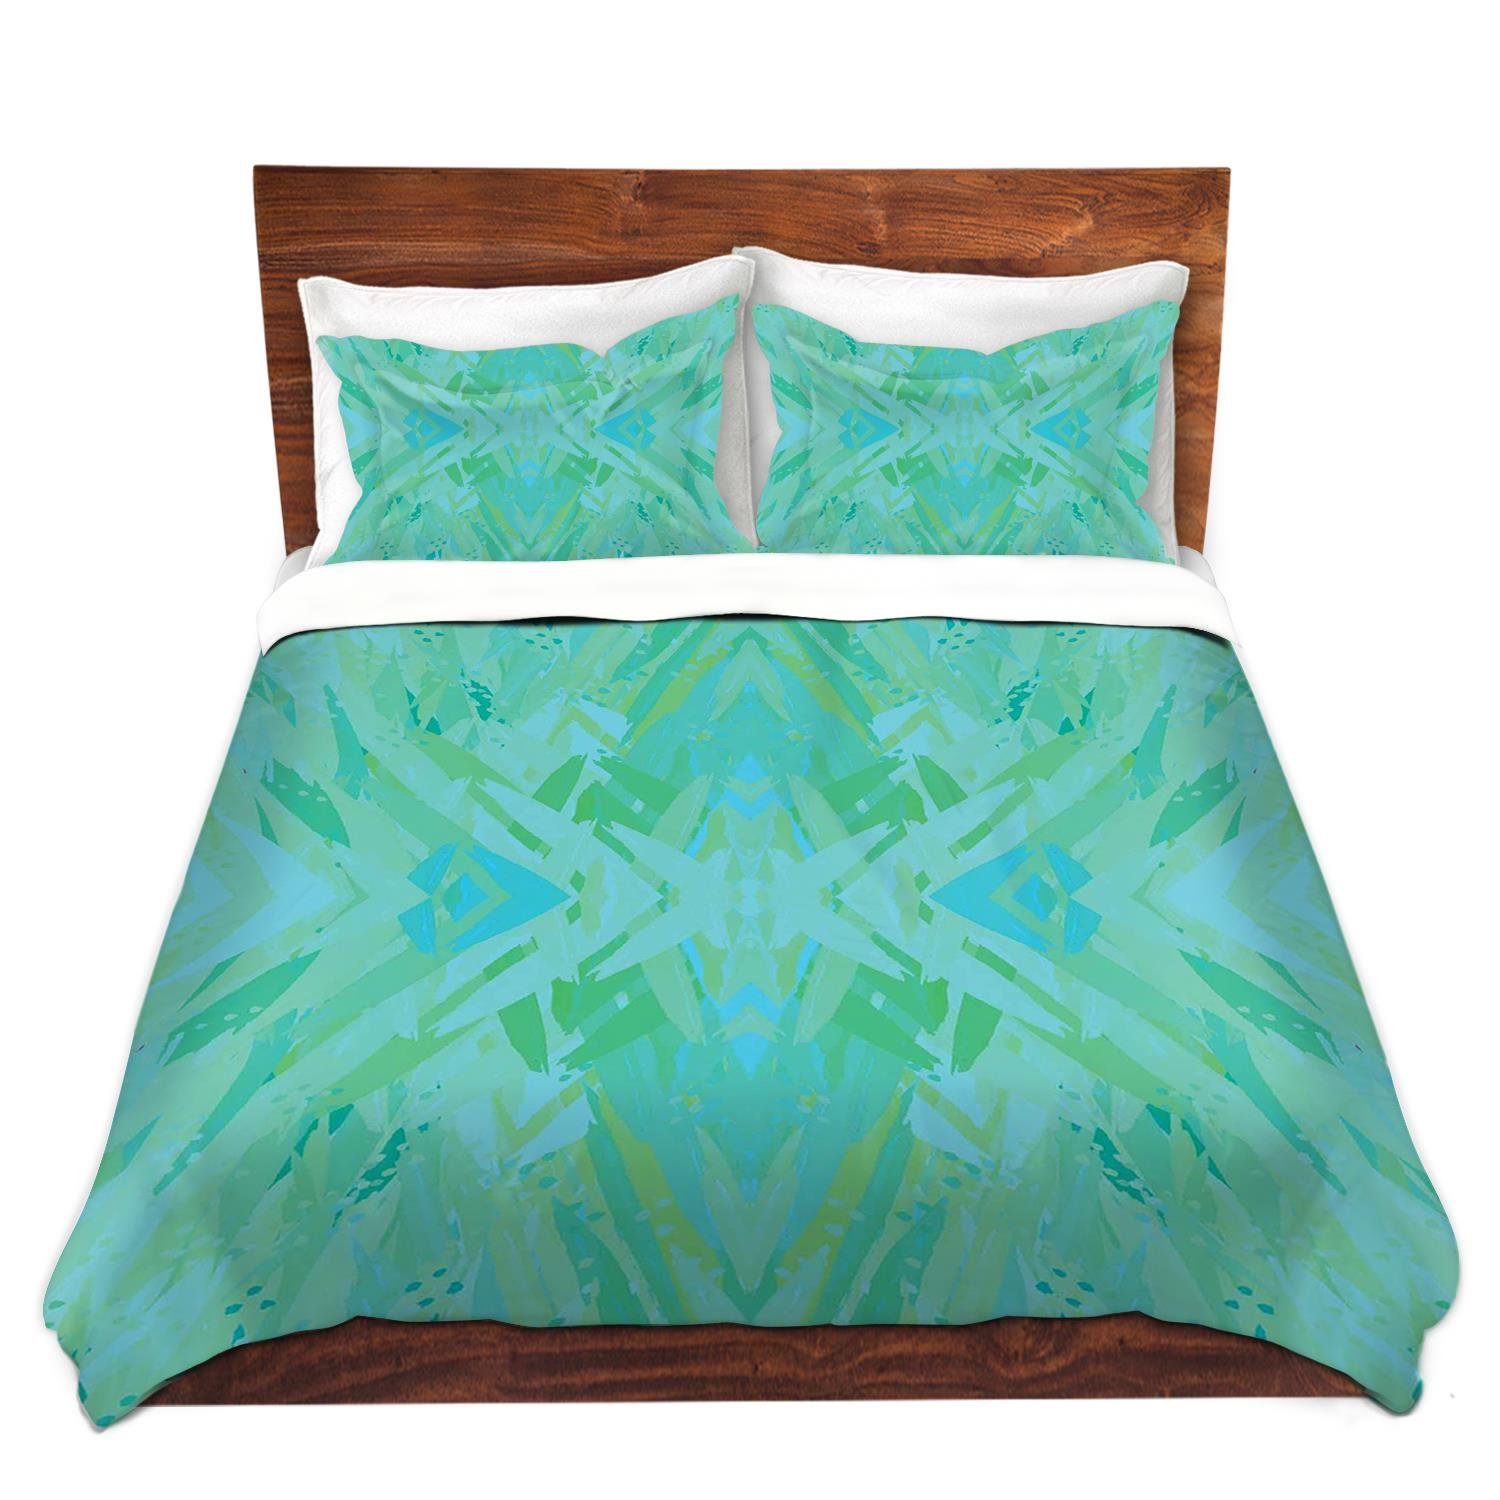 DiaNoche Designs Mingo Love Bedroom and Bedding Ideas Cover, 7 Queen Duvet Sham Set